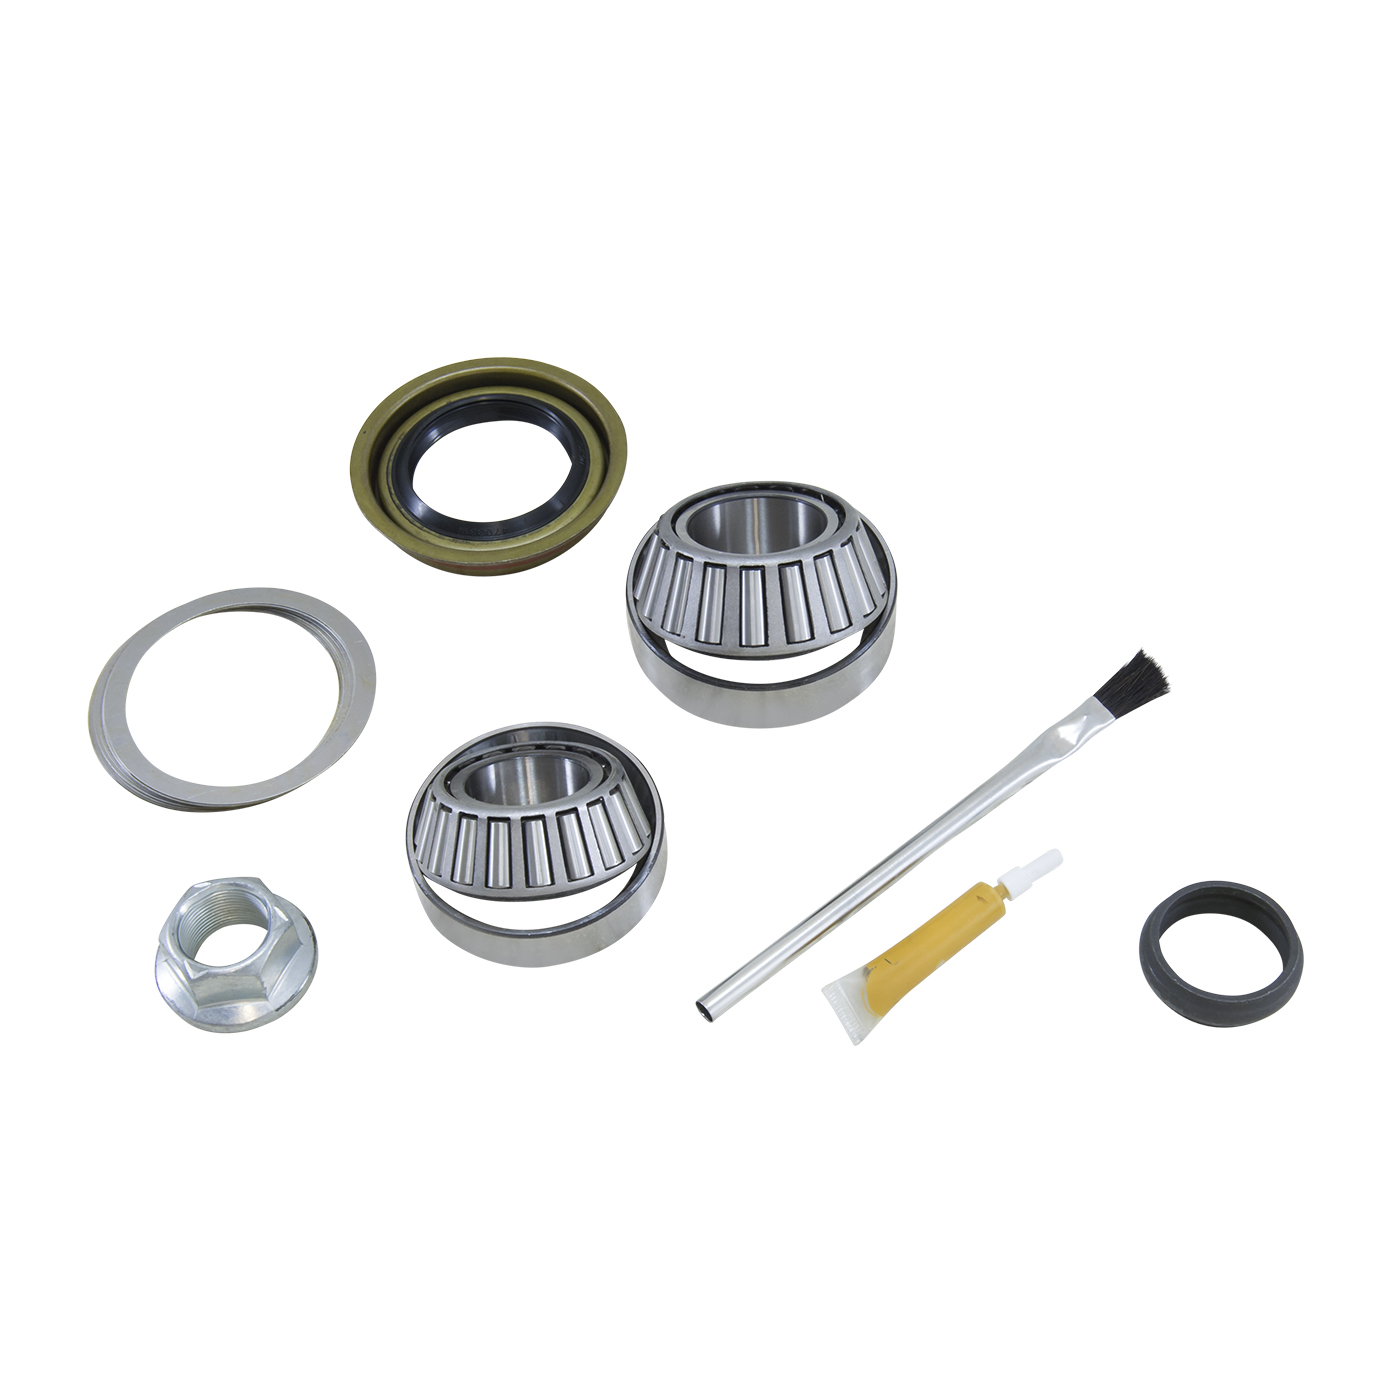 PK M35 - Yukon Pinion install kit for Model 35 differential